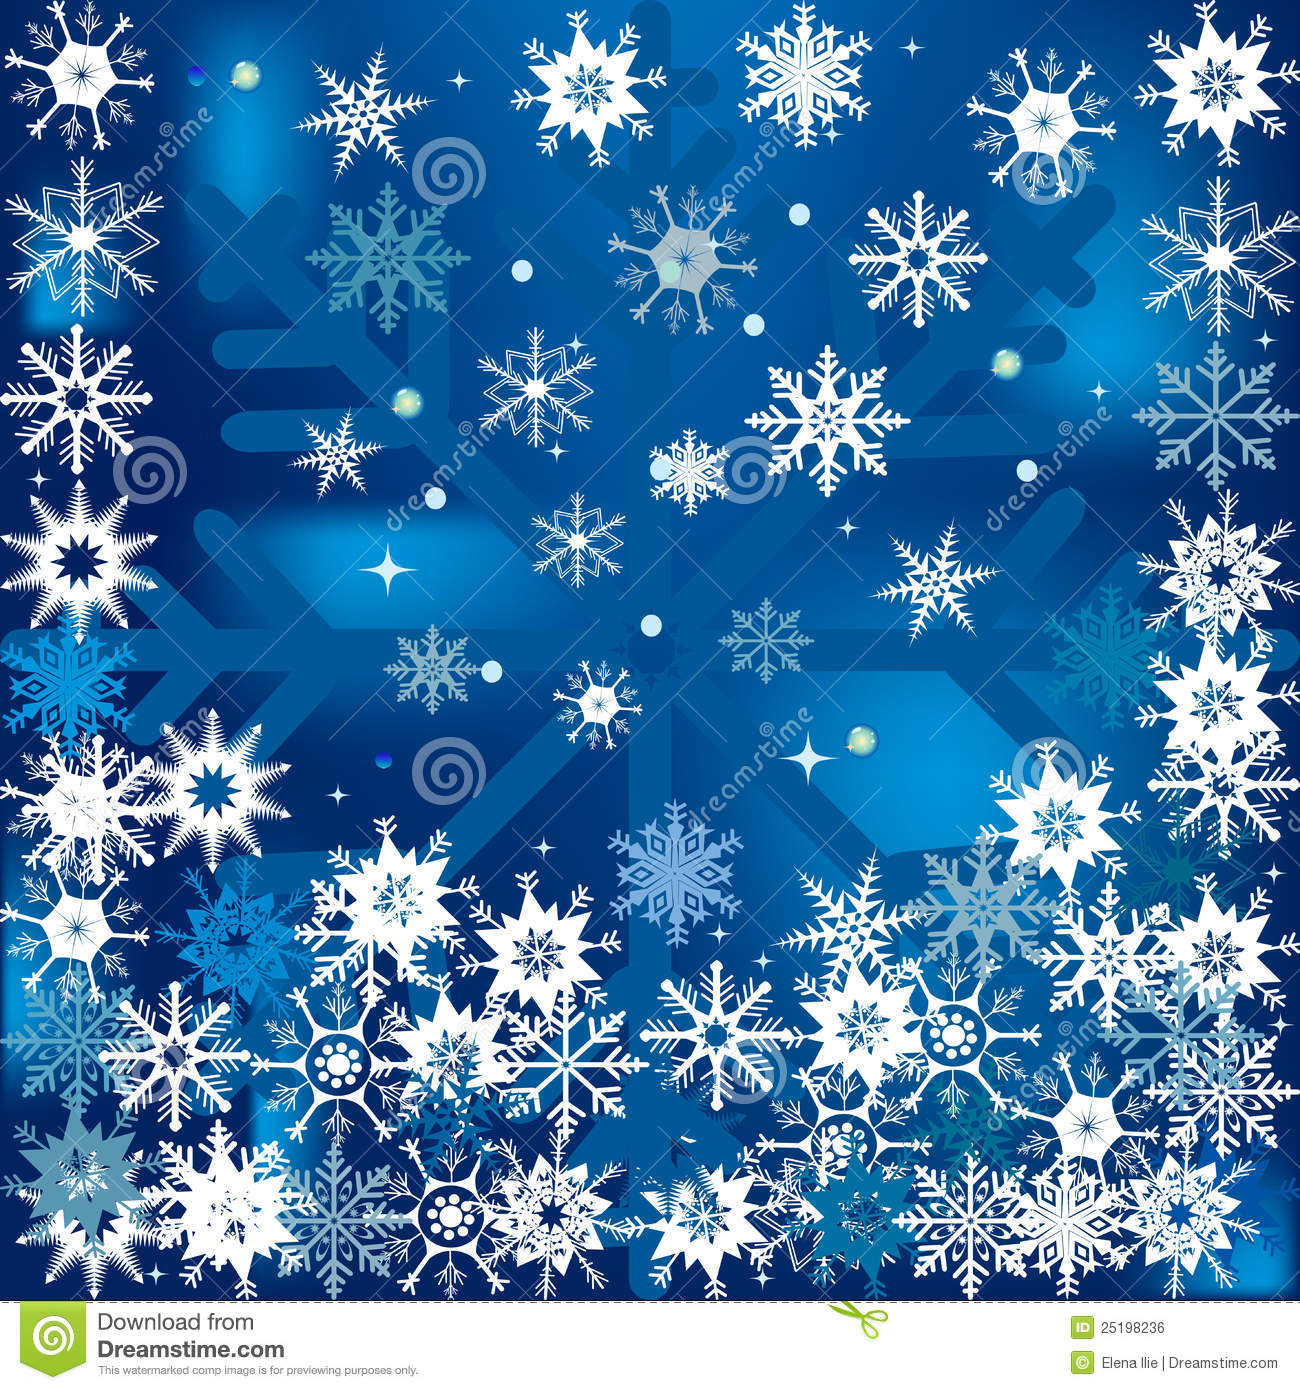 Free Falling Snow Wallpaper Download Winter Background With Falling Snow Royalty Free Stock